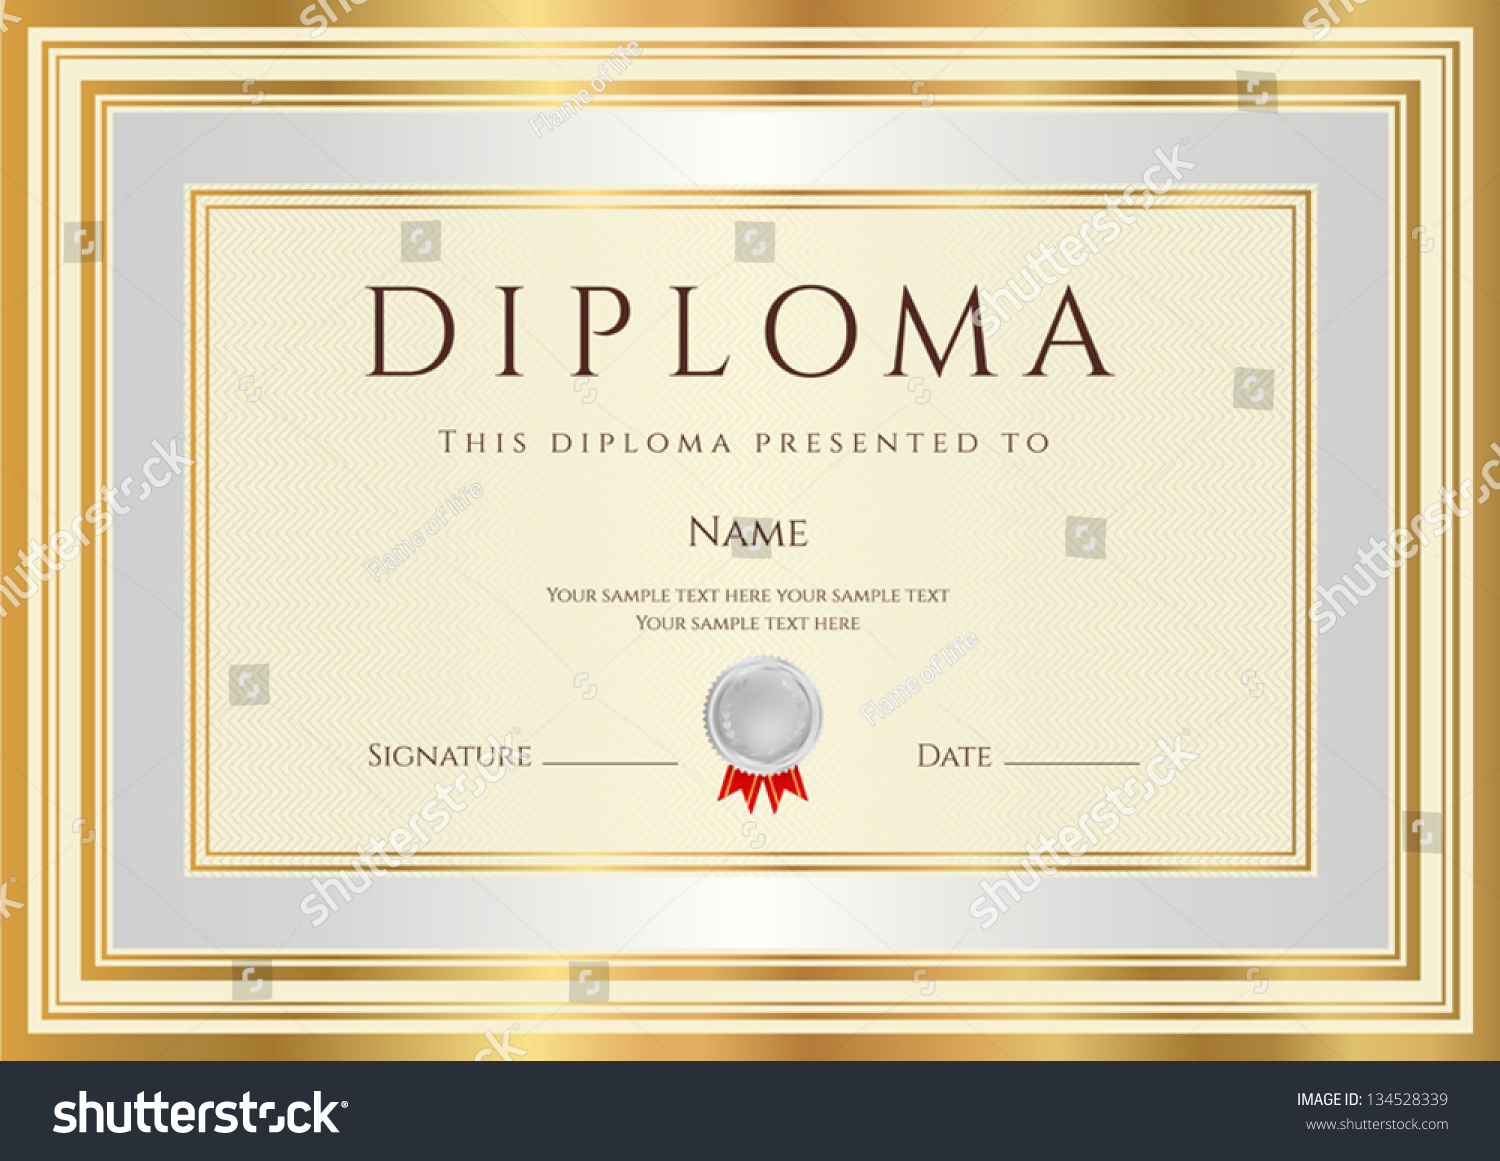 diploma certificate template guilloche pattern silver stock vector diploma certificate template guilloche pattern silver and gold border background design usable